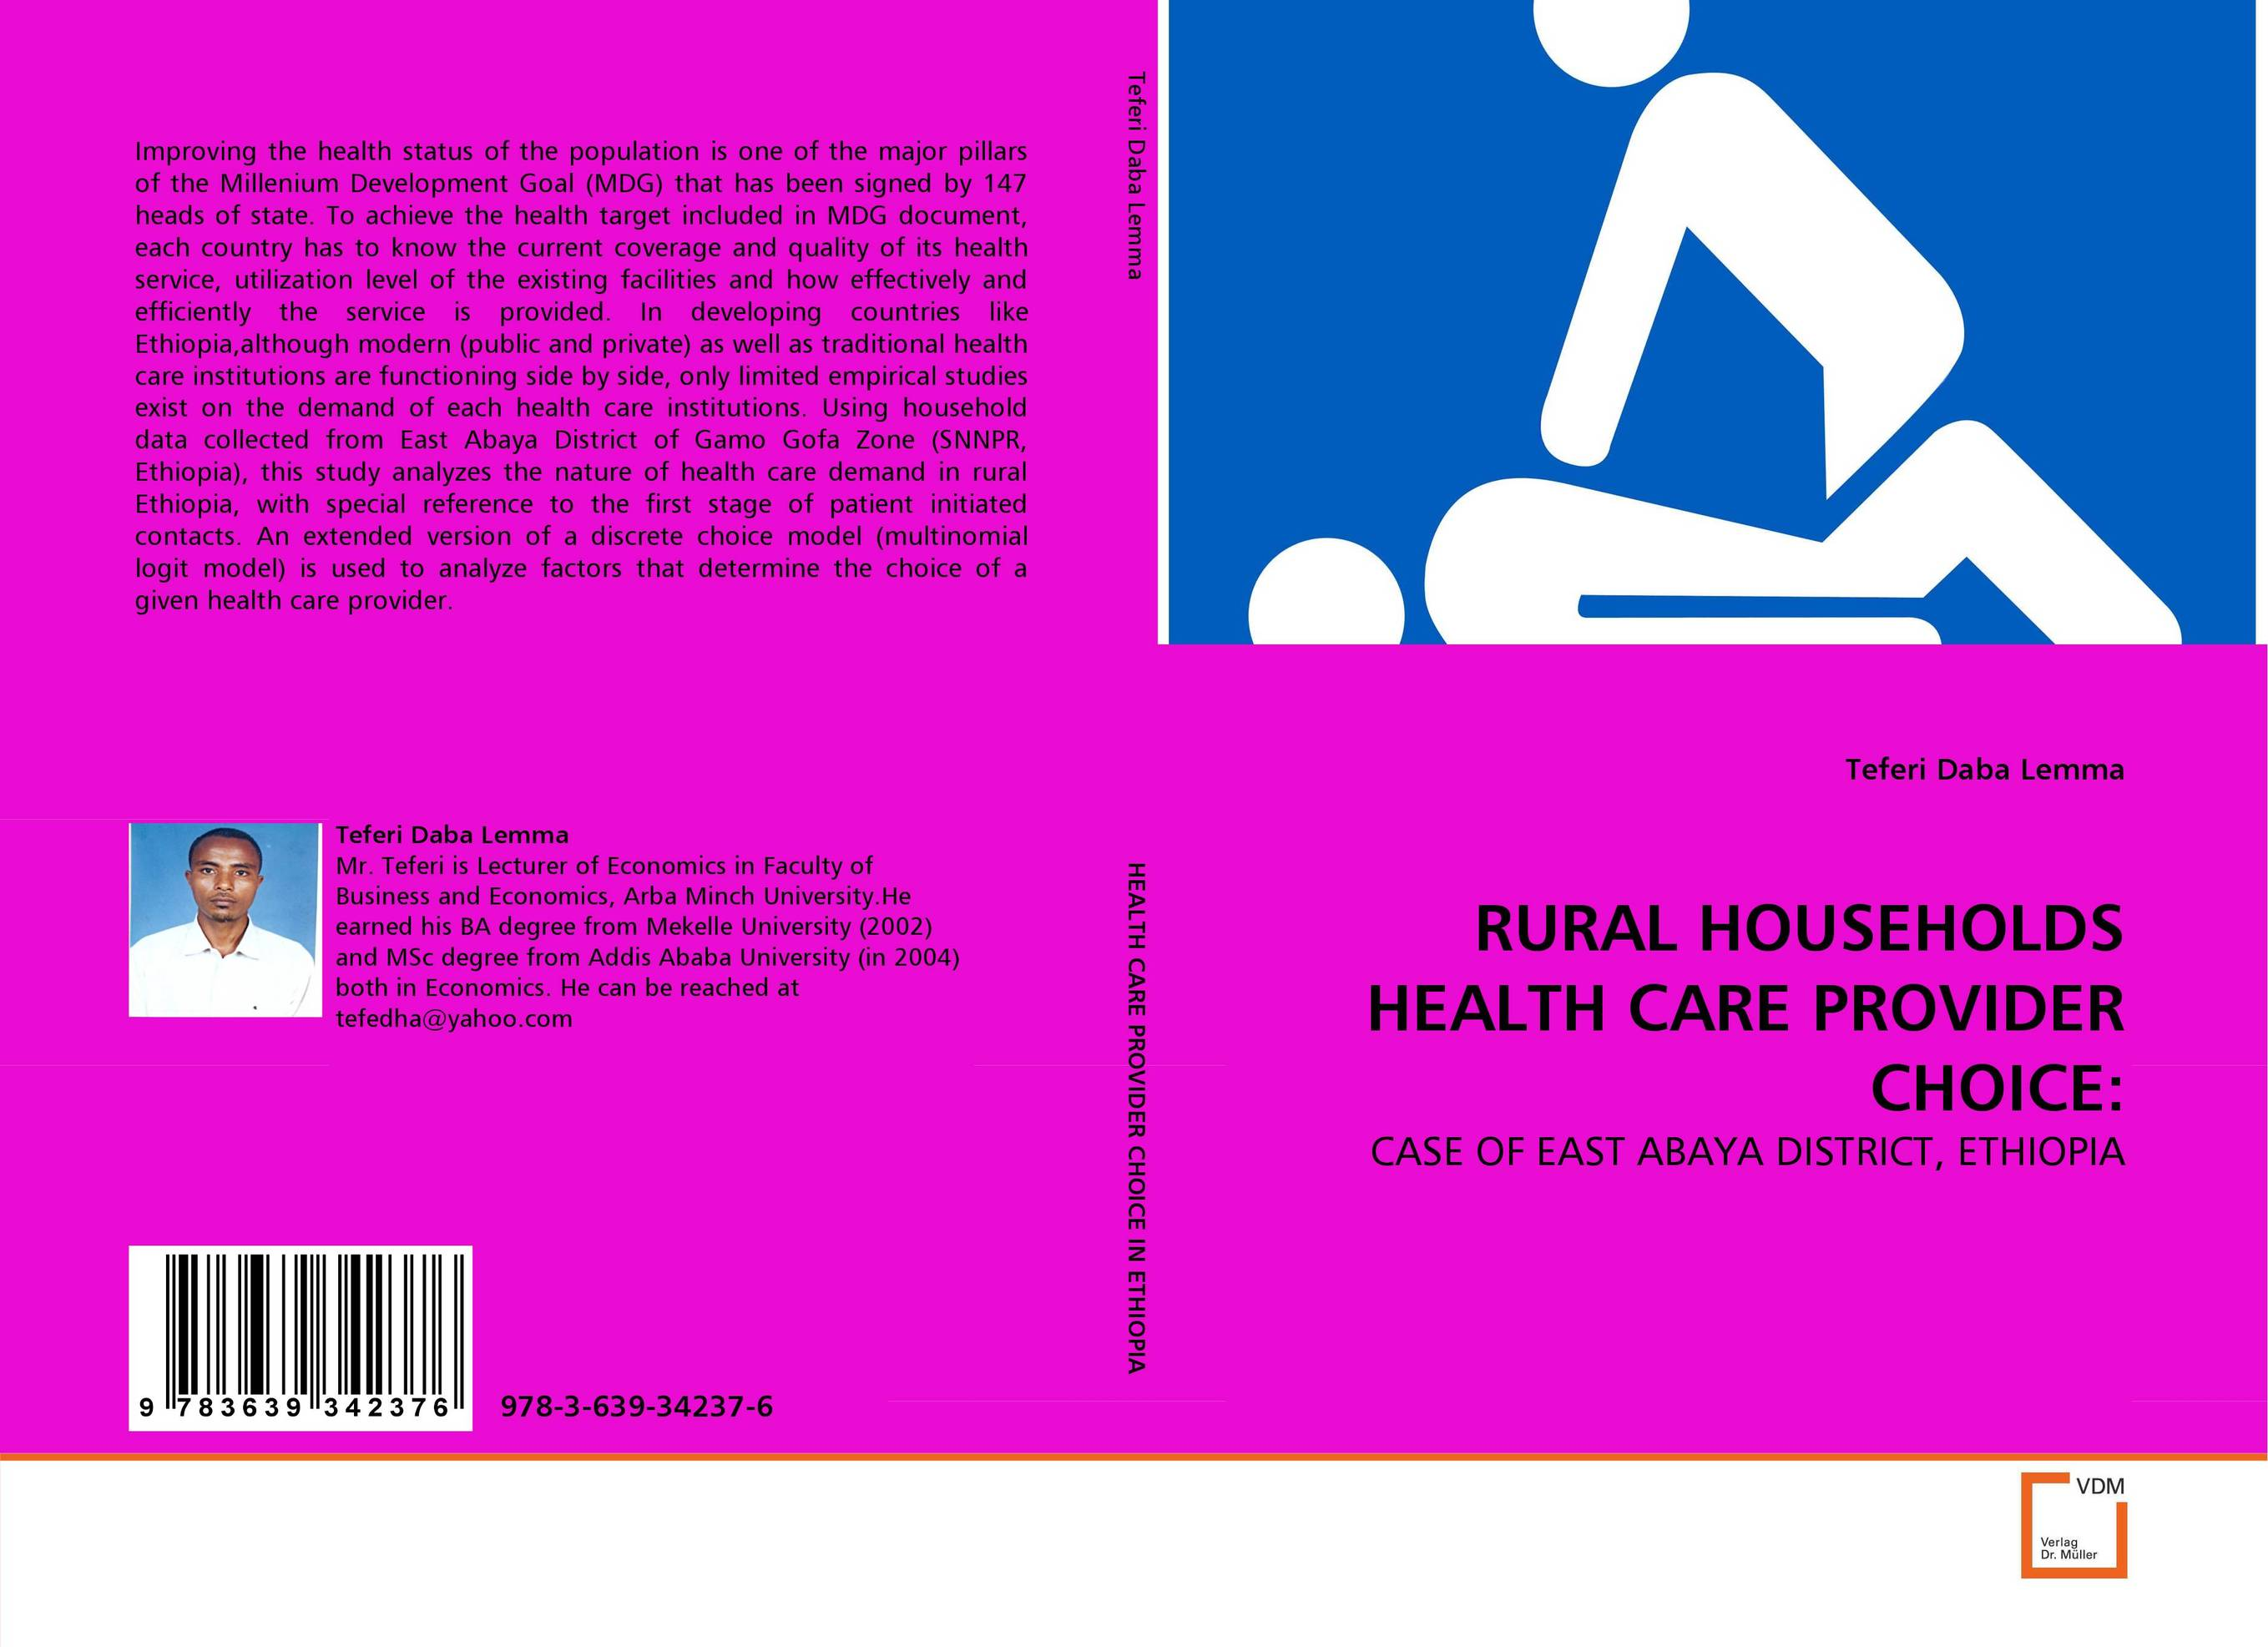 RURAL HOUSEHOLDS HEALTH CARE PROVIDER CHOICE: prostate health devices is prostate removal prostatitis mainly for the prostate health and prostatitis health capsule